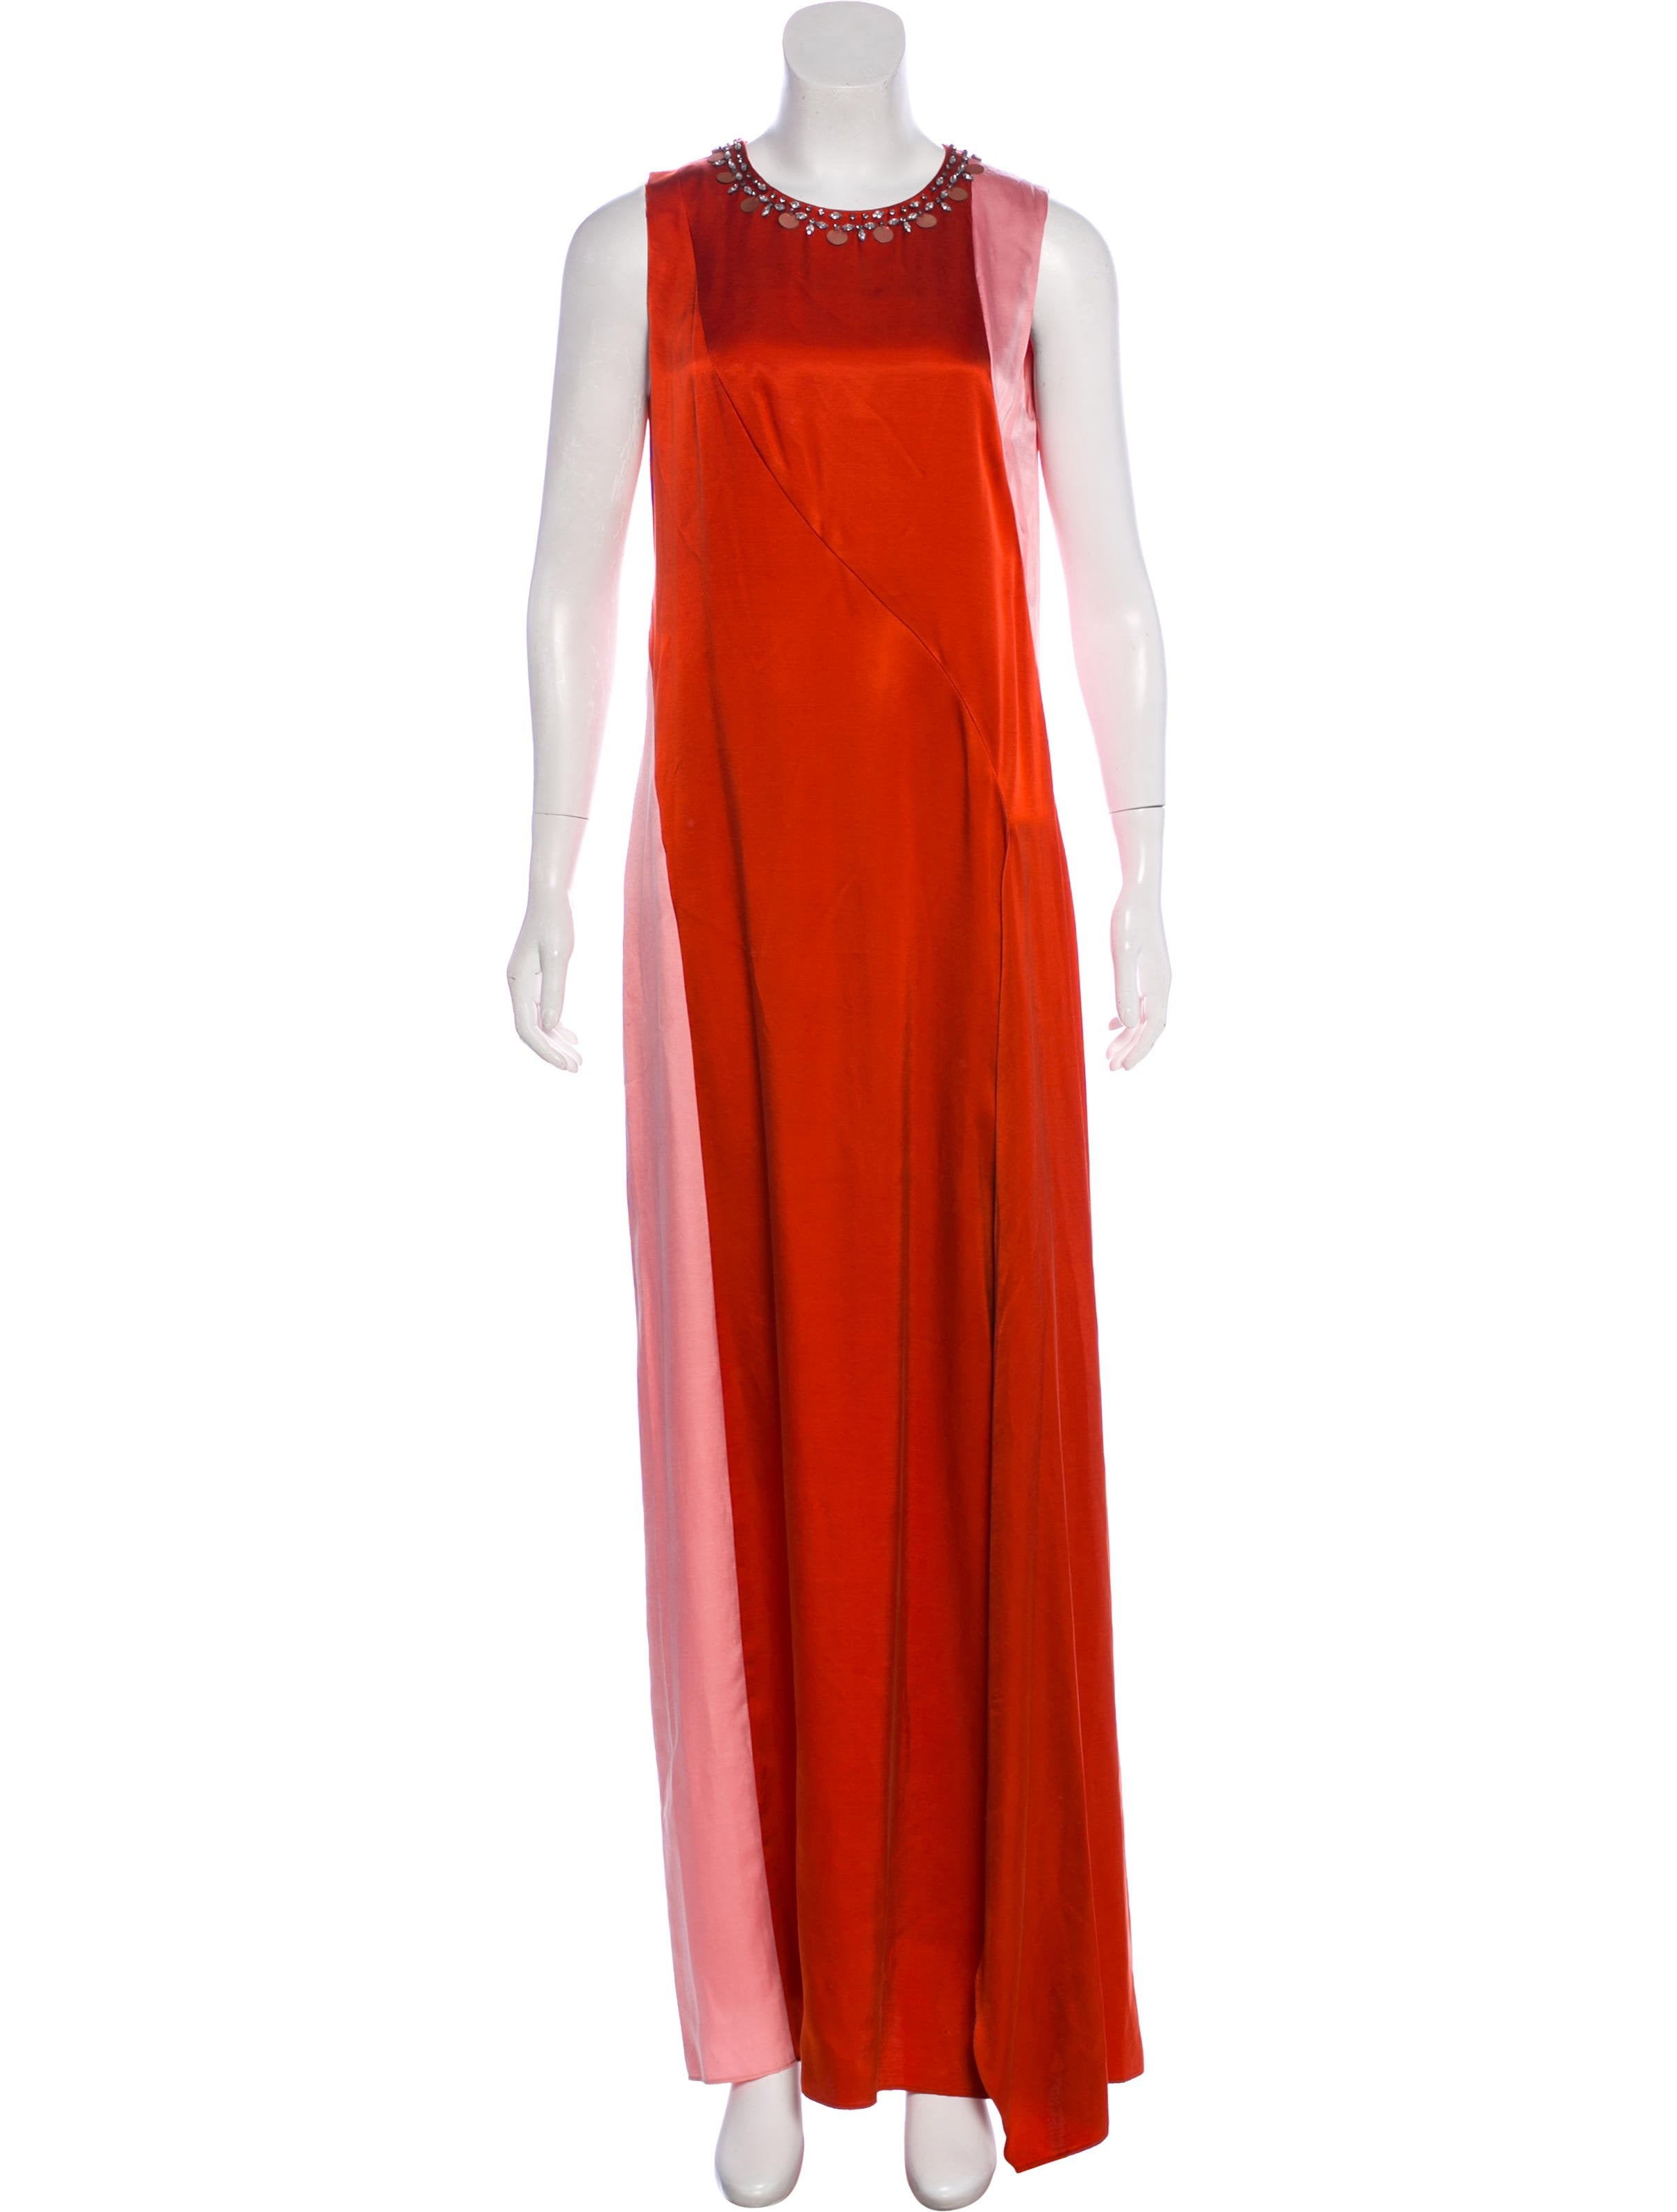 Tory Burch Sleeveless Evening Dress w/ Tags - Clothing - WTO150252 ...